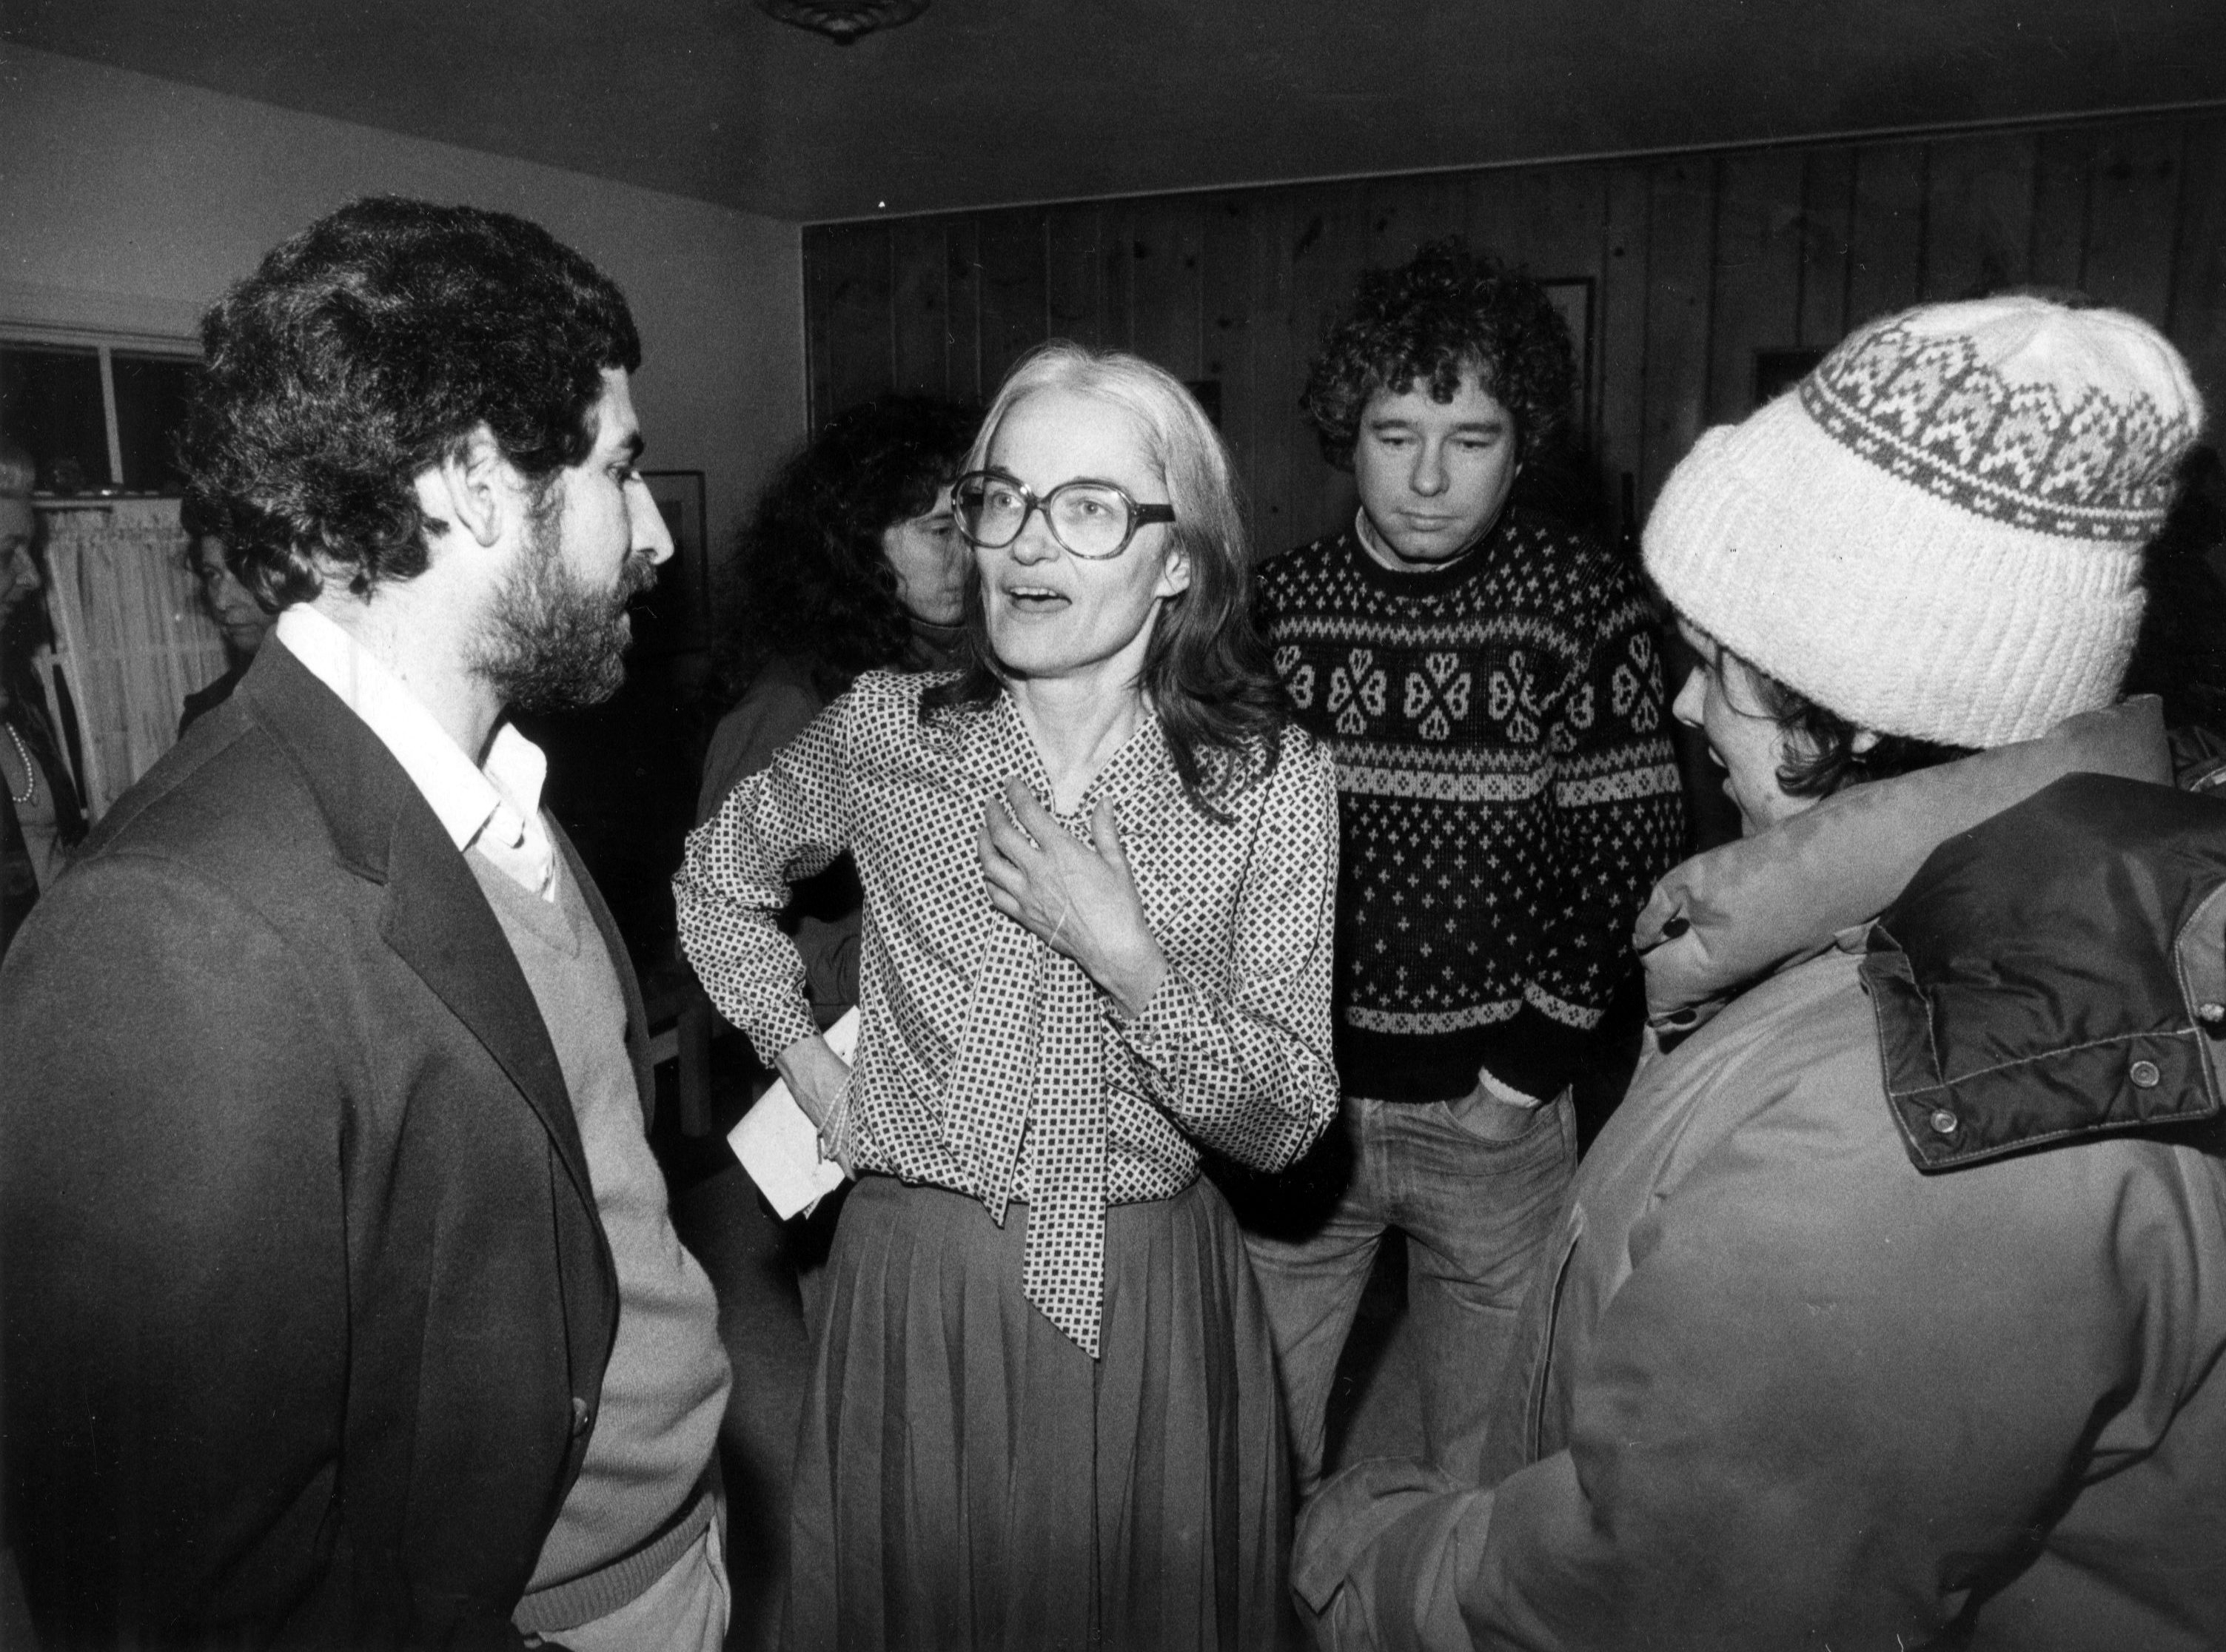 Cynthia B. Dwyer, then 49, gets reacquainted with family and friends at Amherst home after release from Iranian captivity in February 1981.